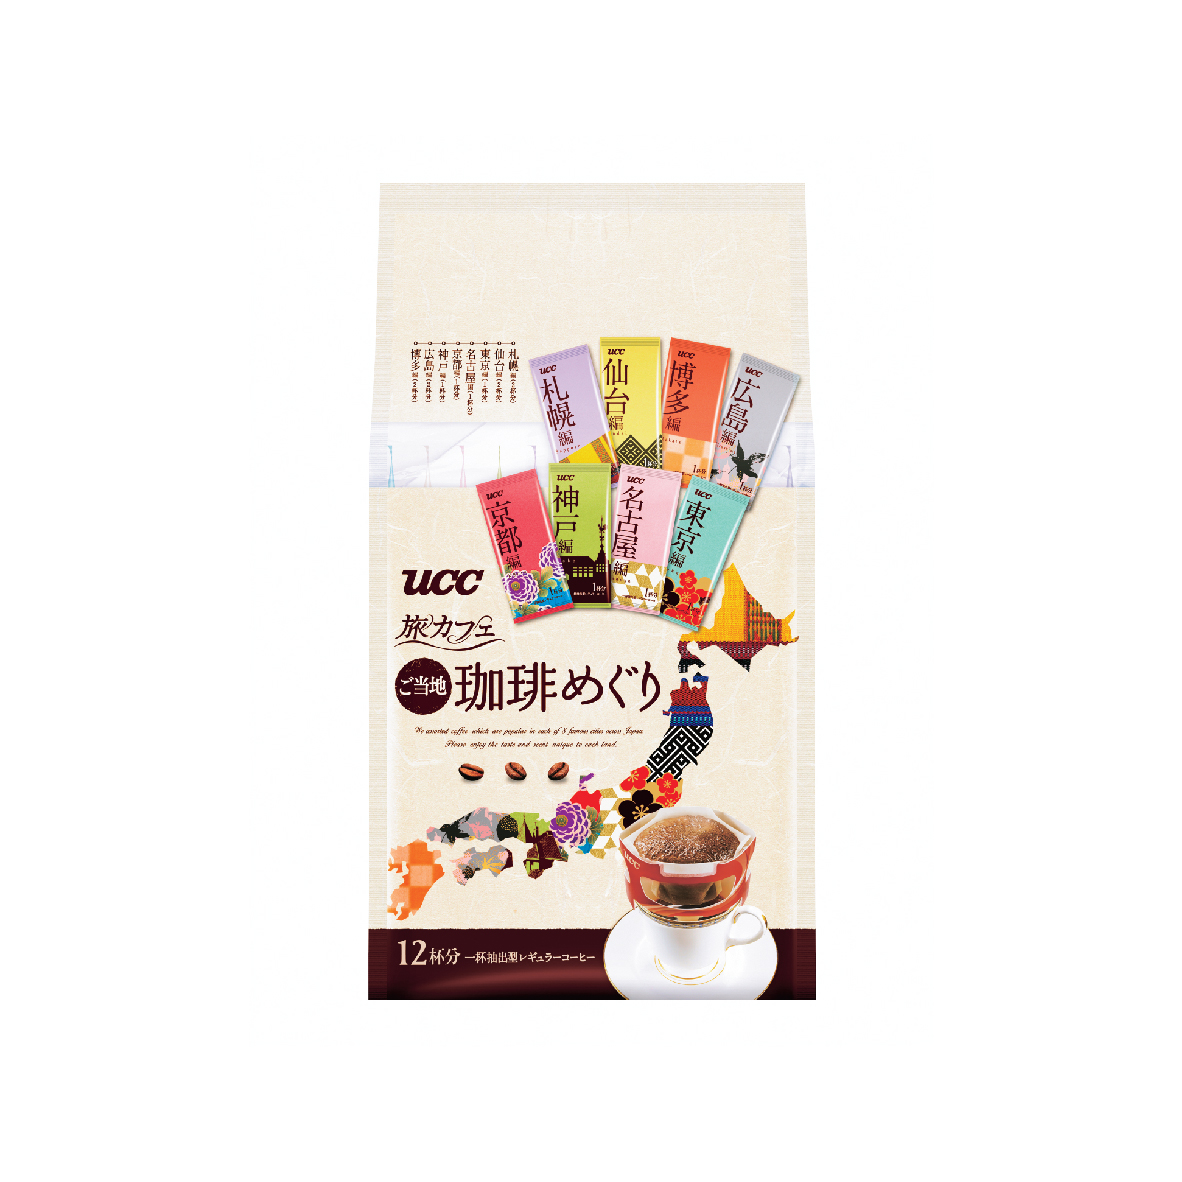 UCC Travel Cafe Tour Drip Coffee Variety Pack